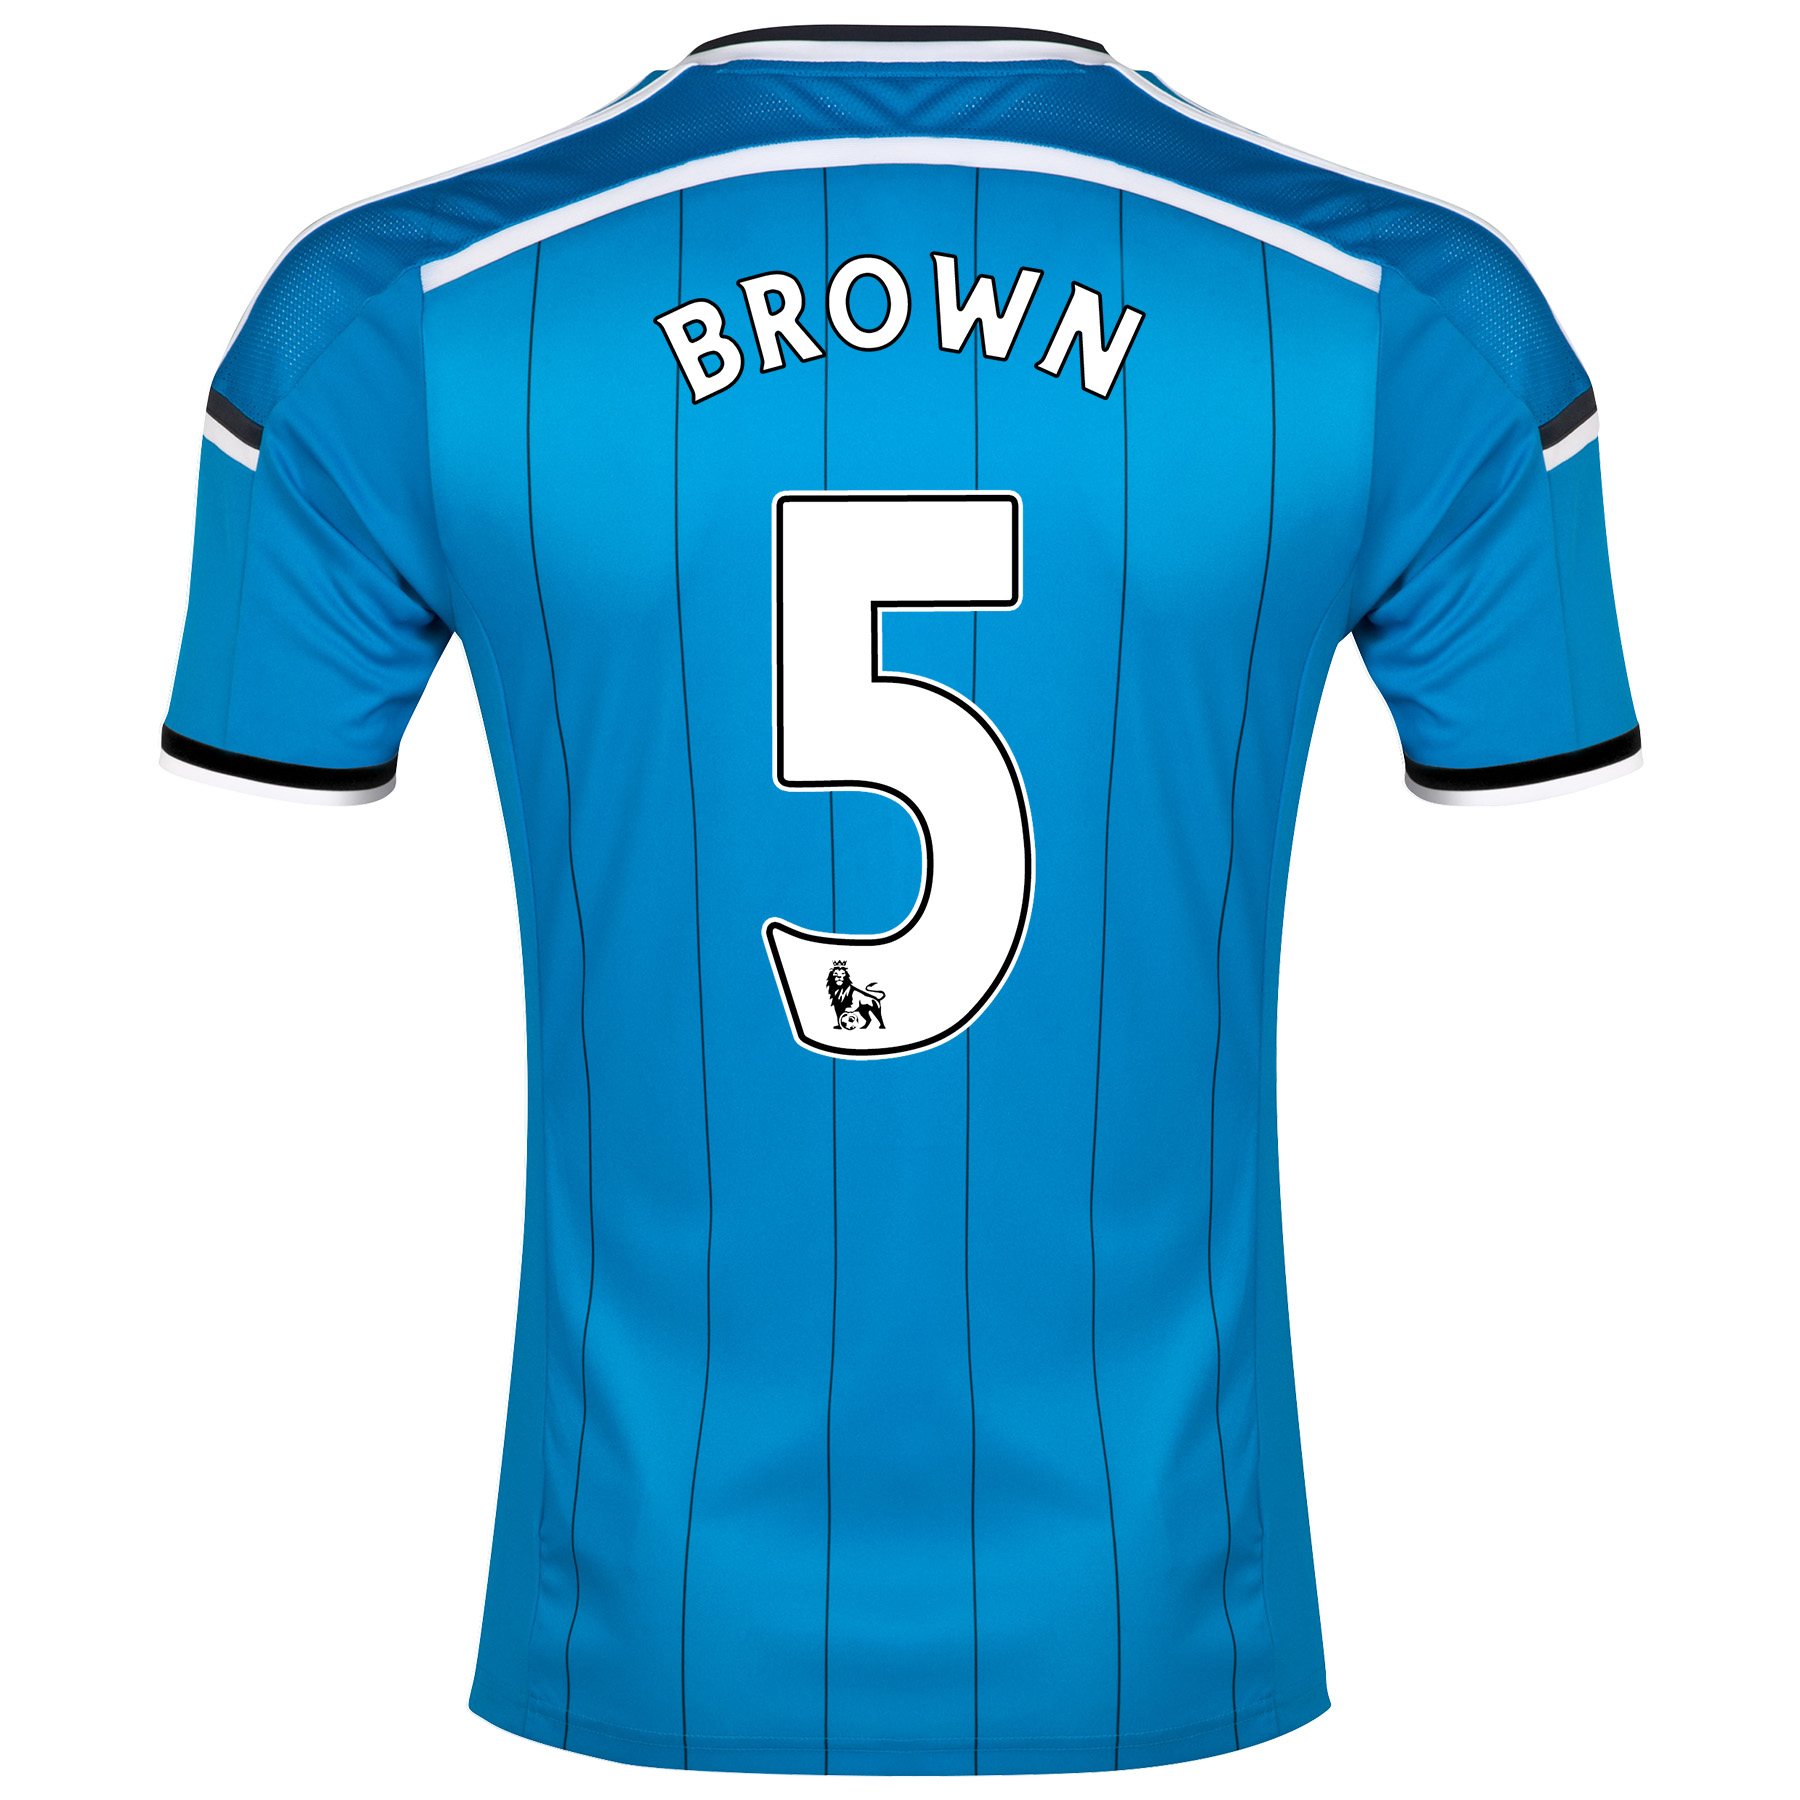 Sunderland Away Shirt 2014/15 Lt Blue with Brown 5 printing